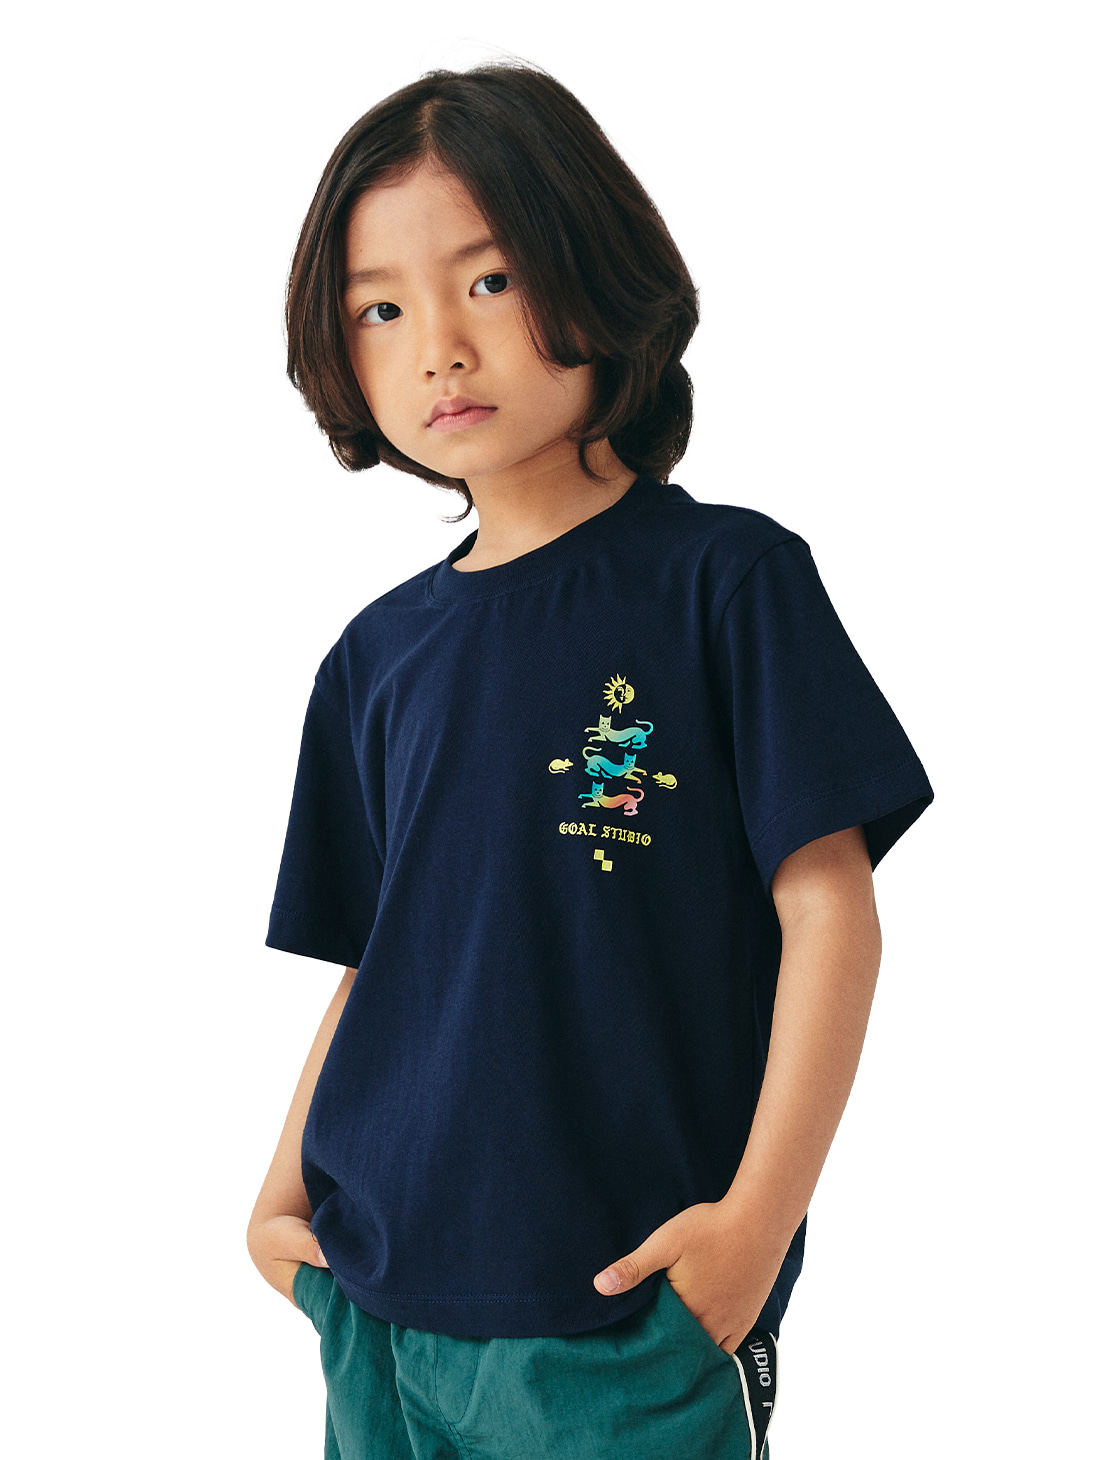 GOALSTUDIO (KIDS) MC EMBLEM GRAPHIC TEE - NAVY